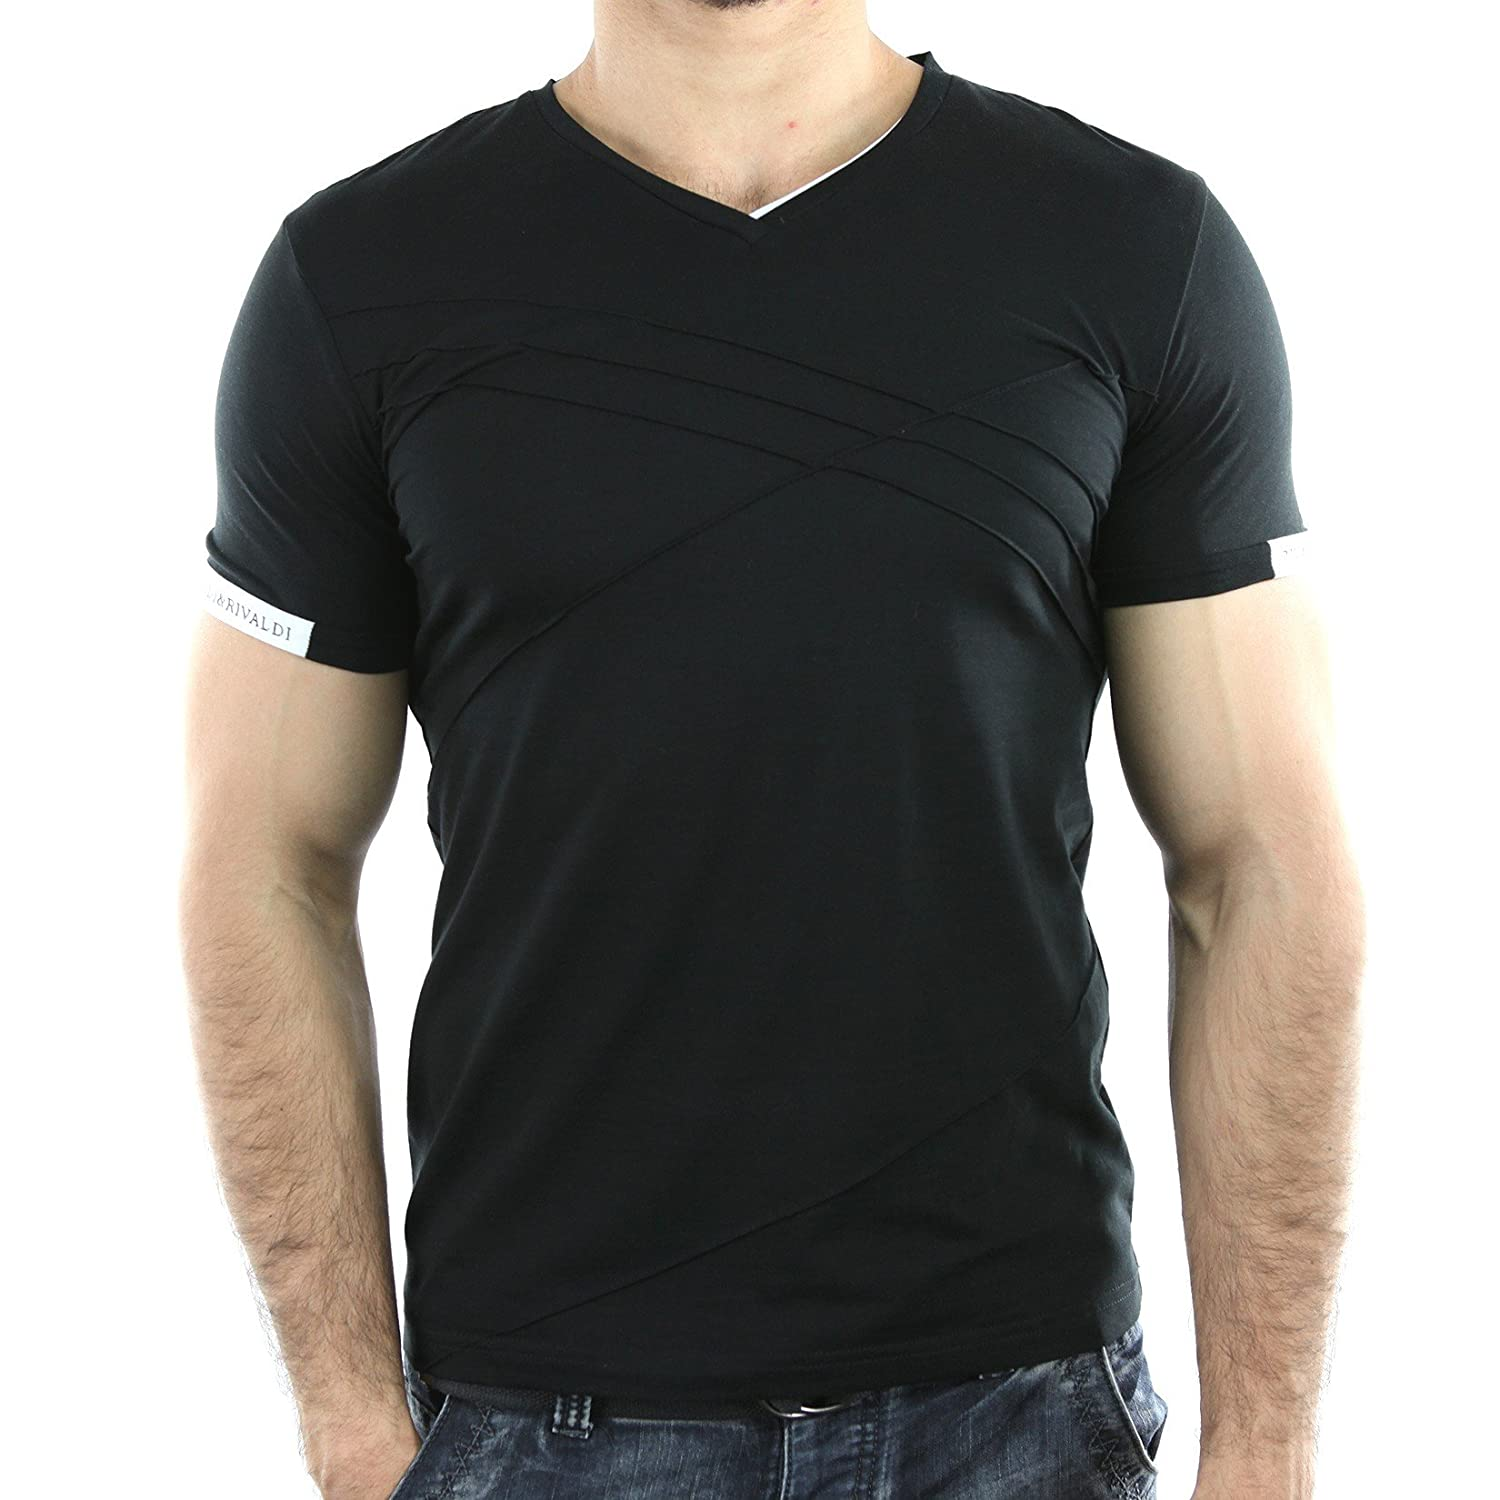 Solamode - T-Shirt V-Neck - Rivaldi - Mibrid - Unisex - Fashion - Black - Attention! Recommended to choose one size more than your normal size